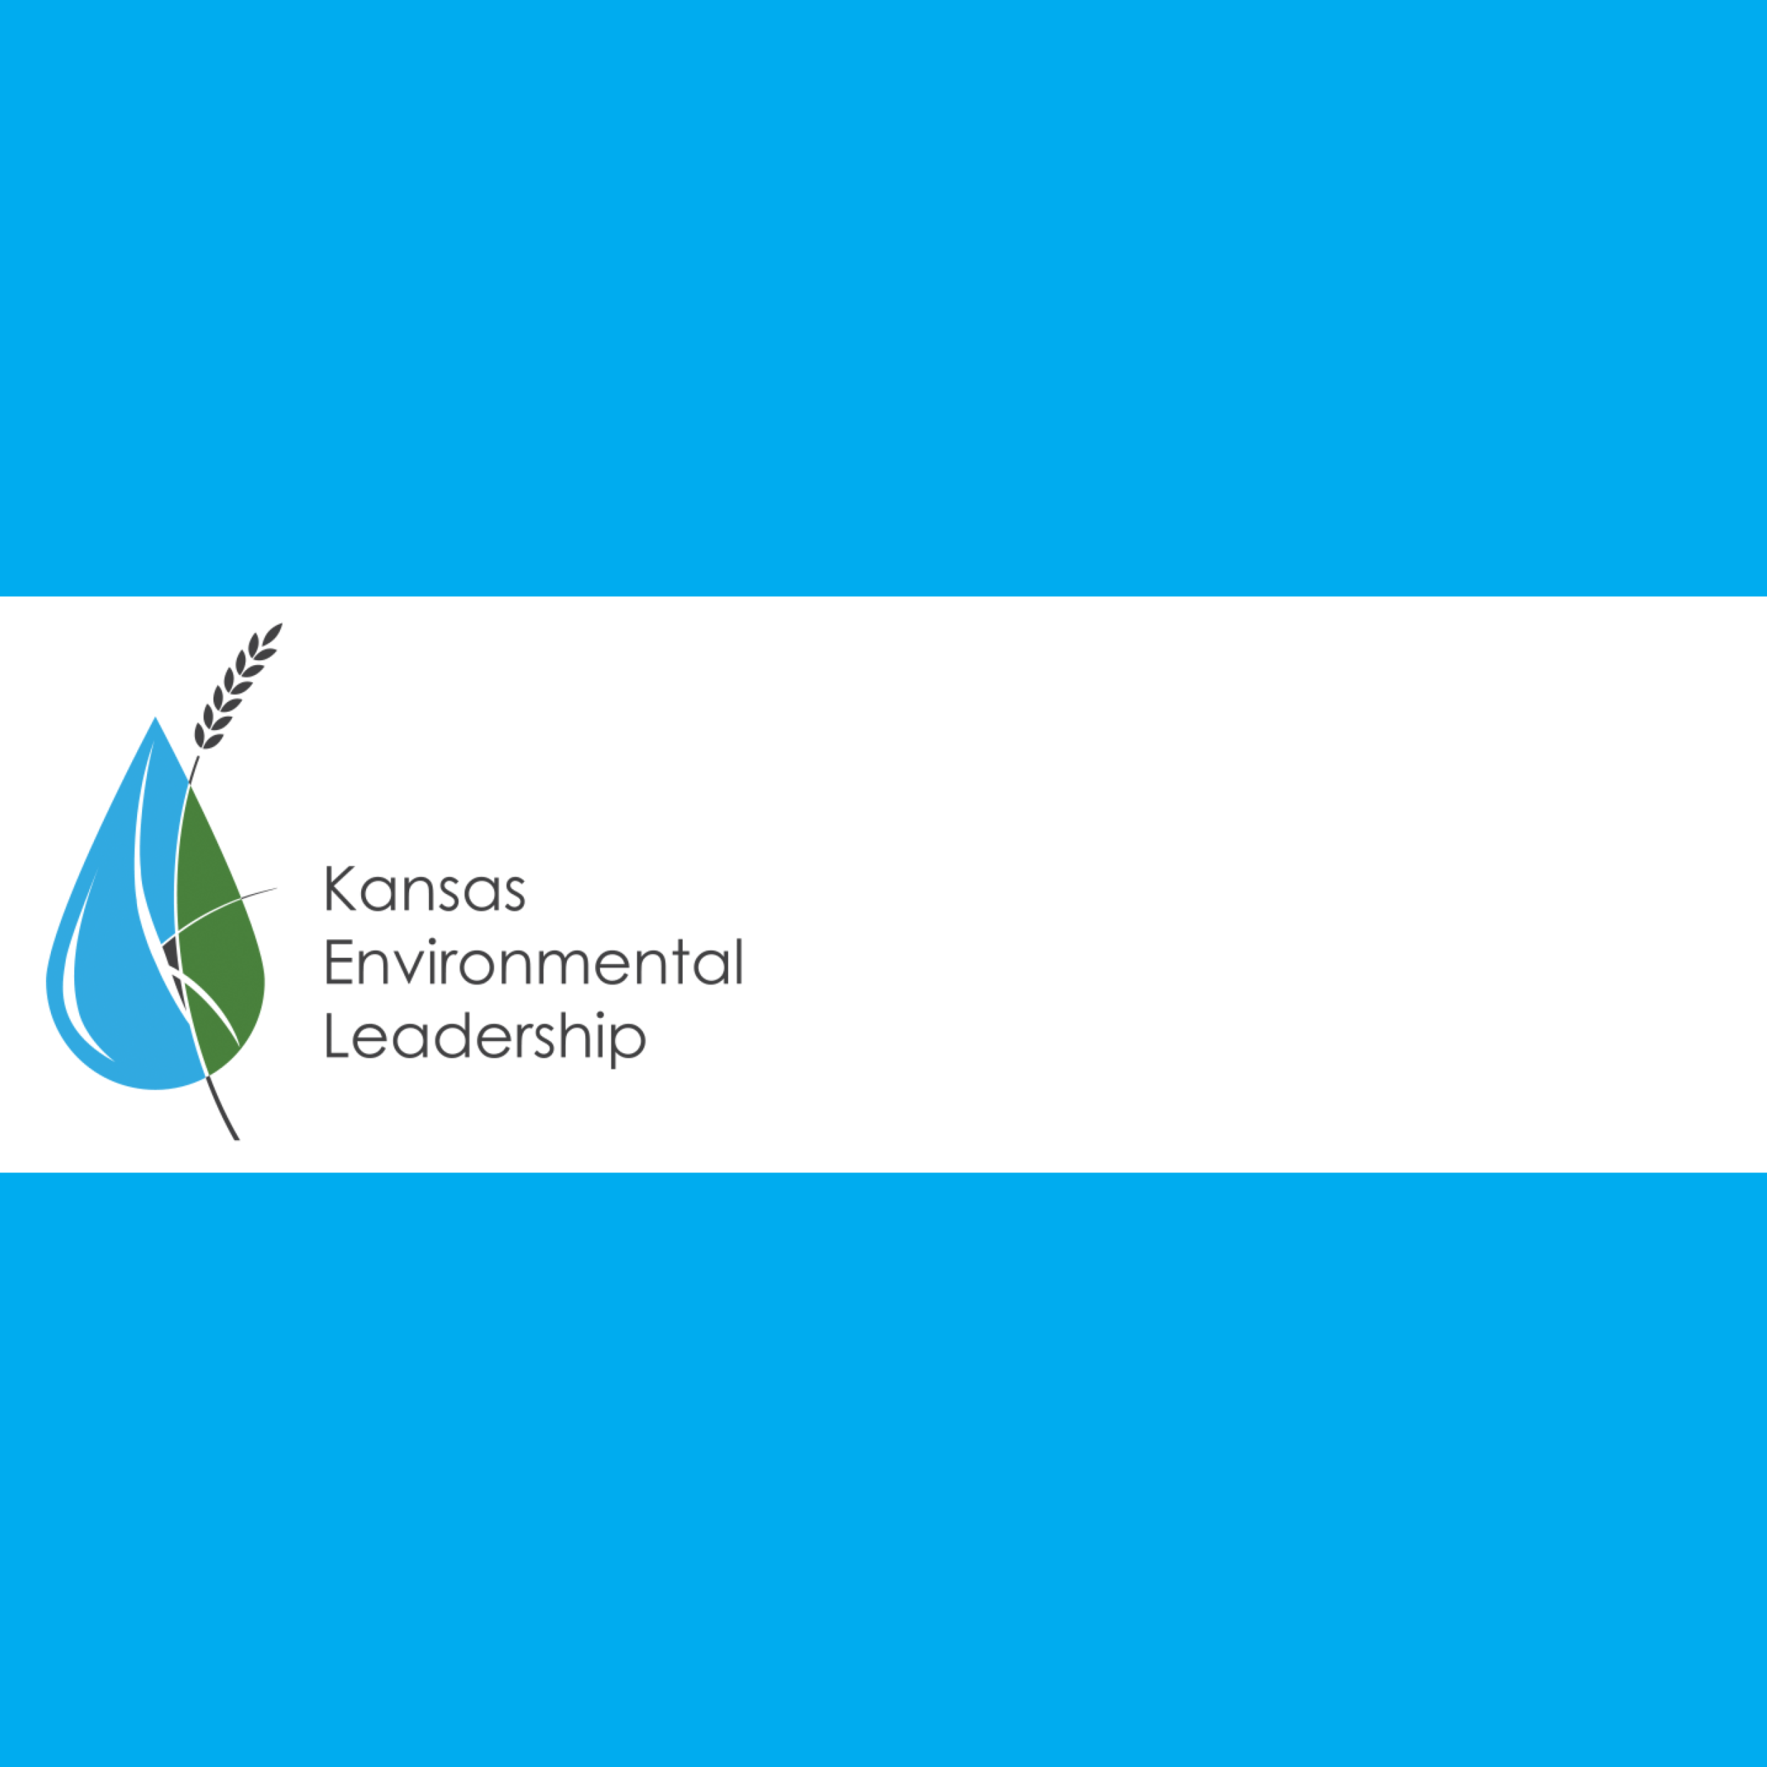 Support Kansas Environmental Leadership! image